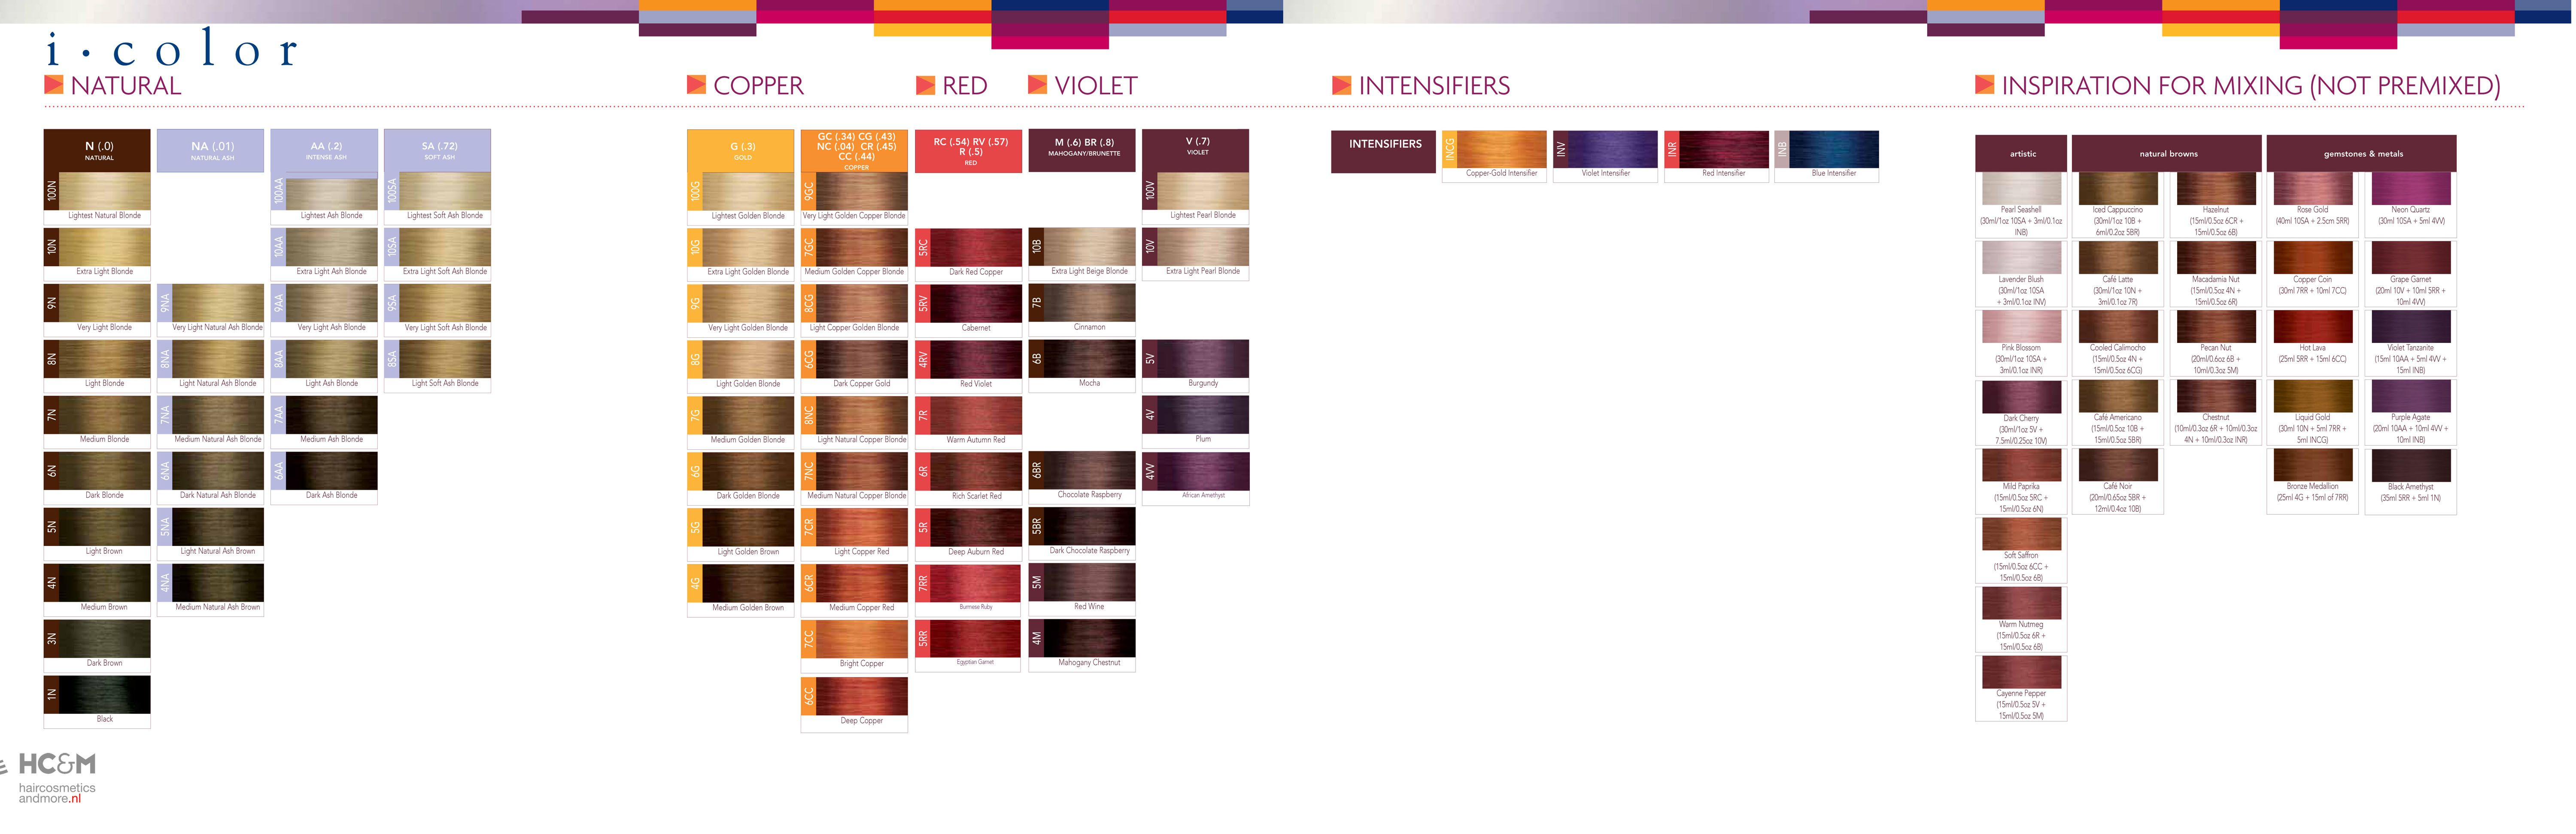 Iso I Color Swatch Chart Guy Tang Pinterest Swatch Hair